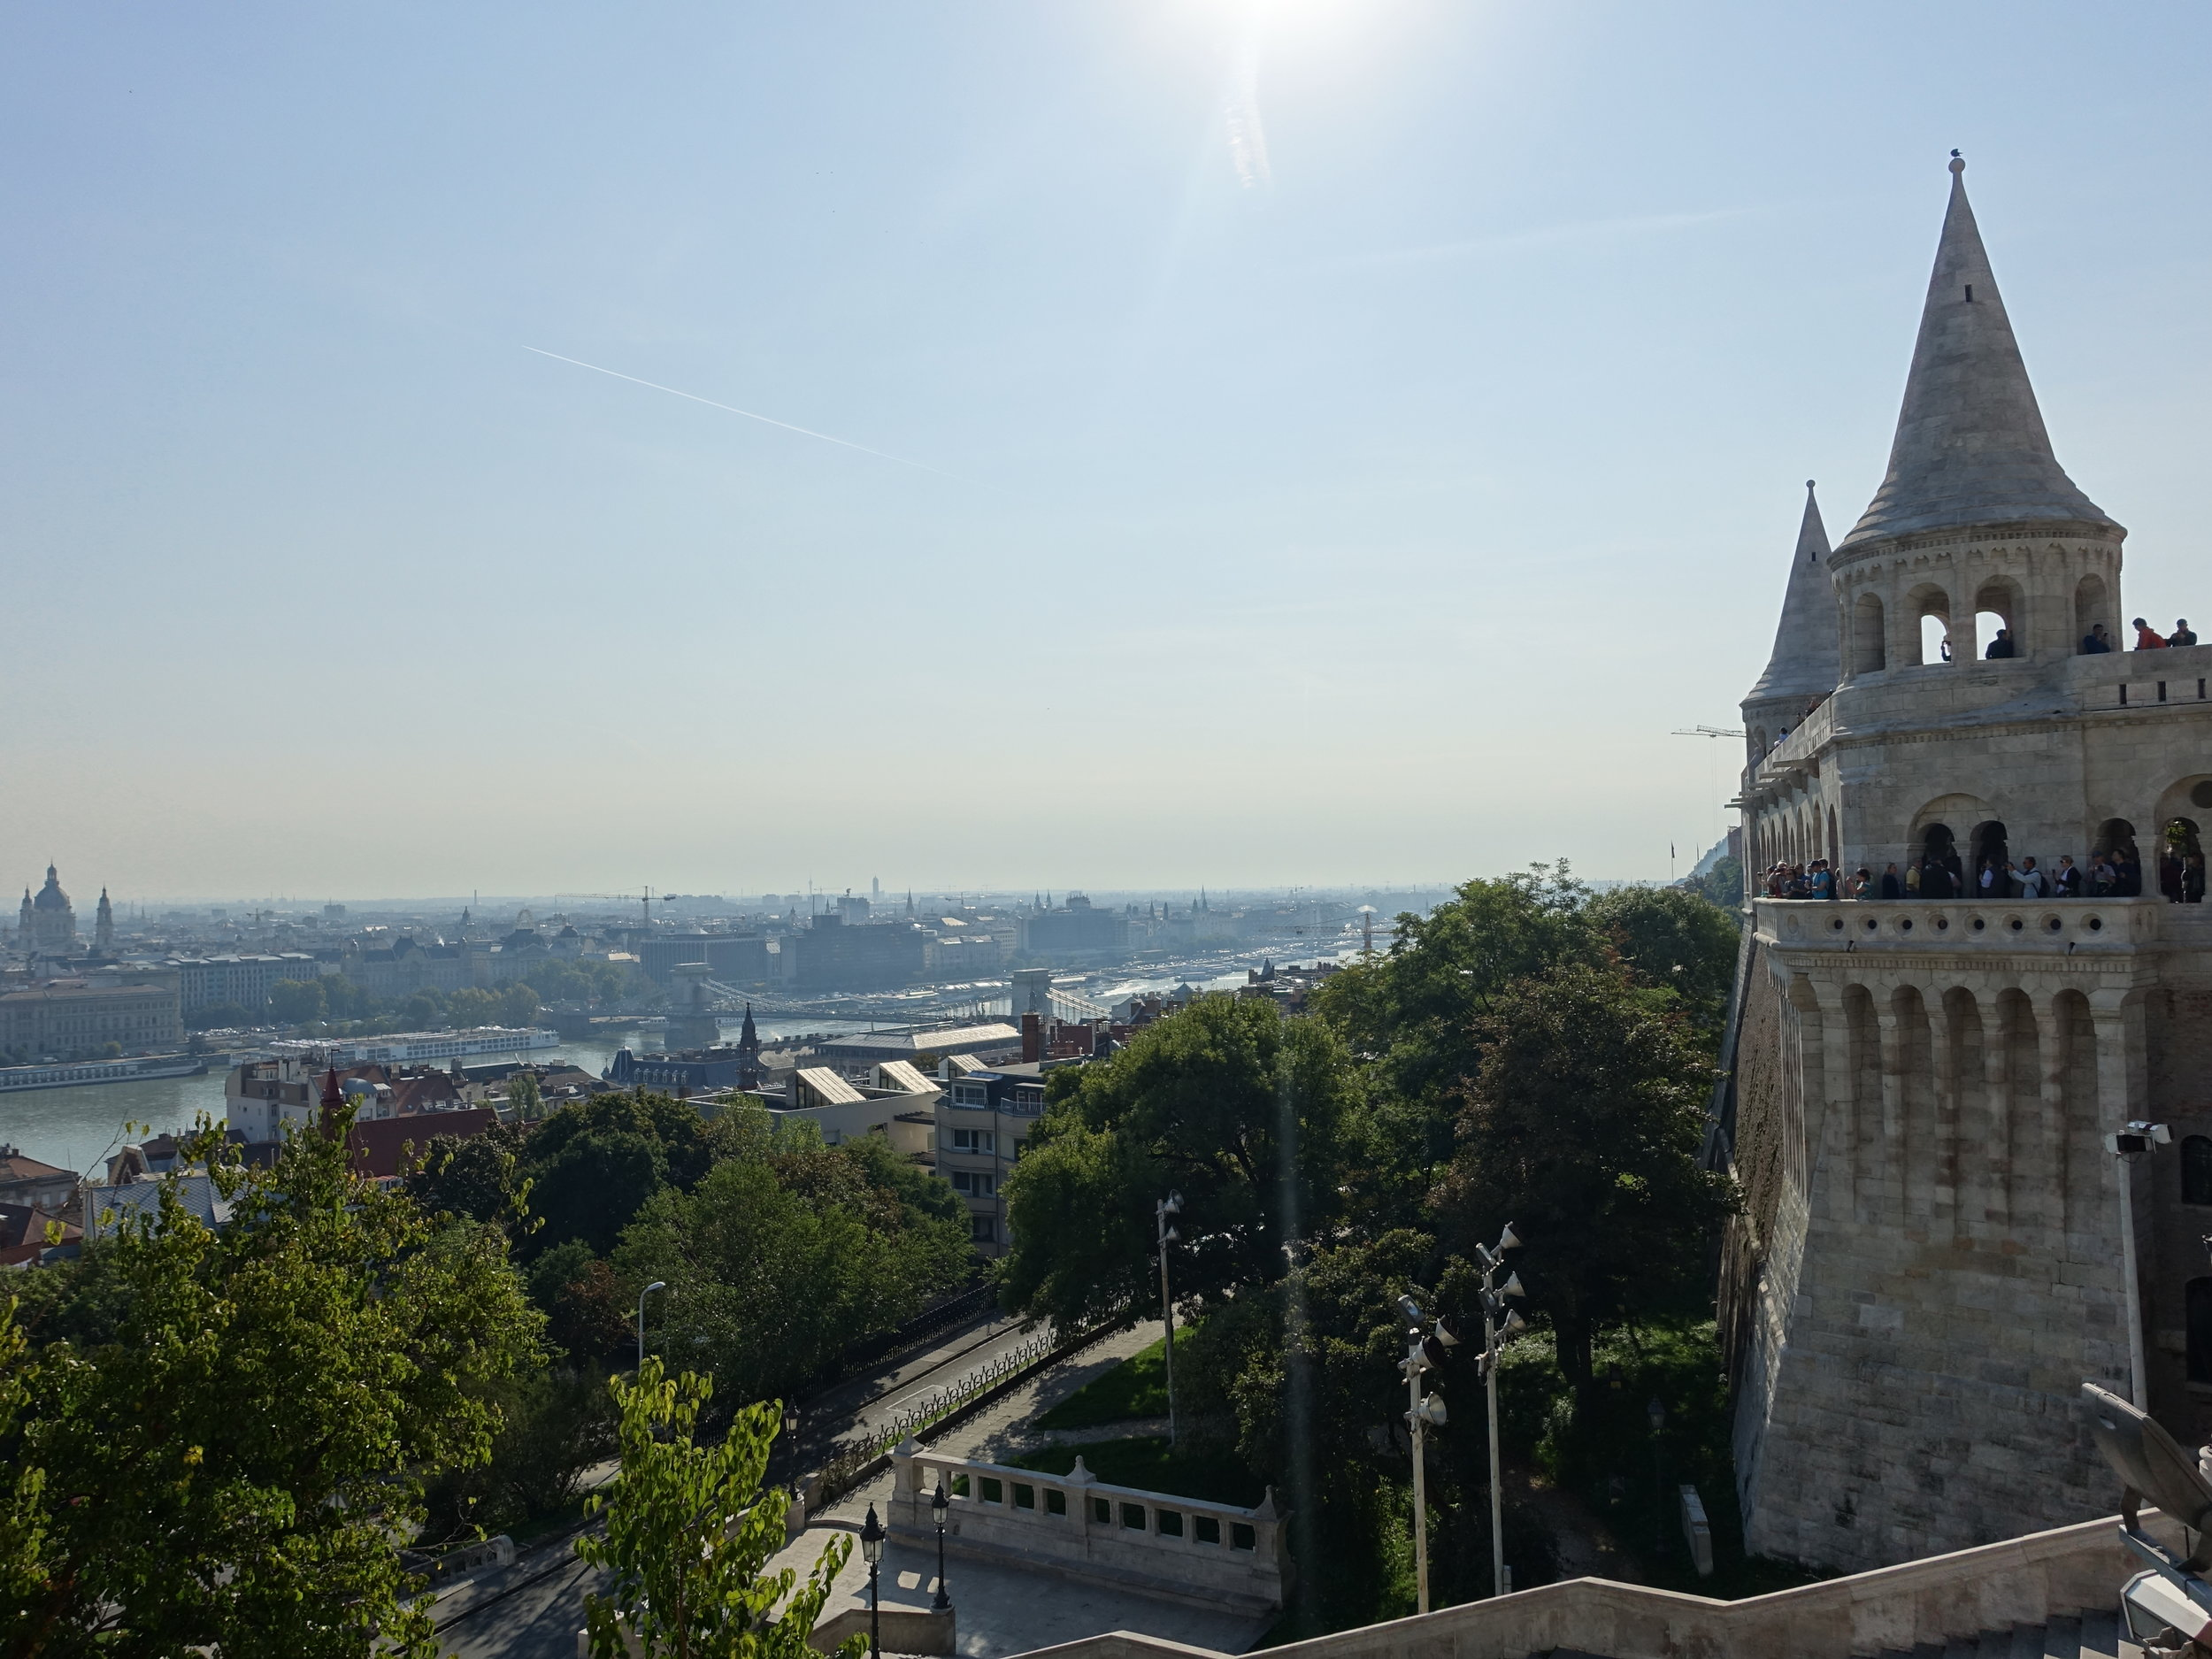 View of Pest side of Budapest from Fisherman's Bastion